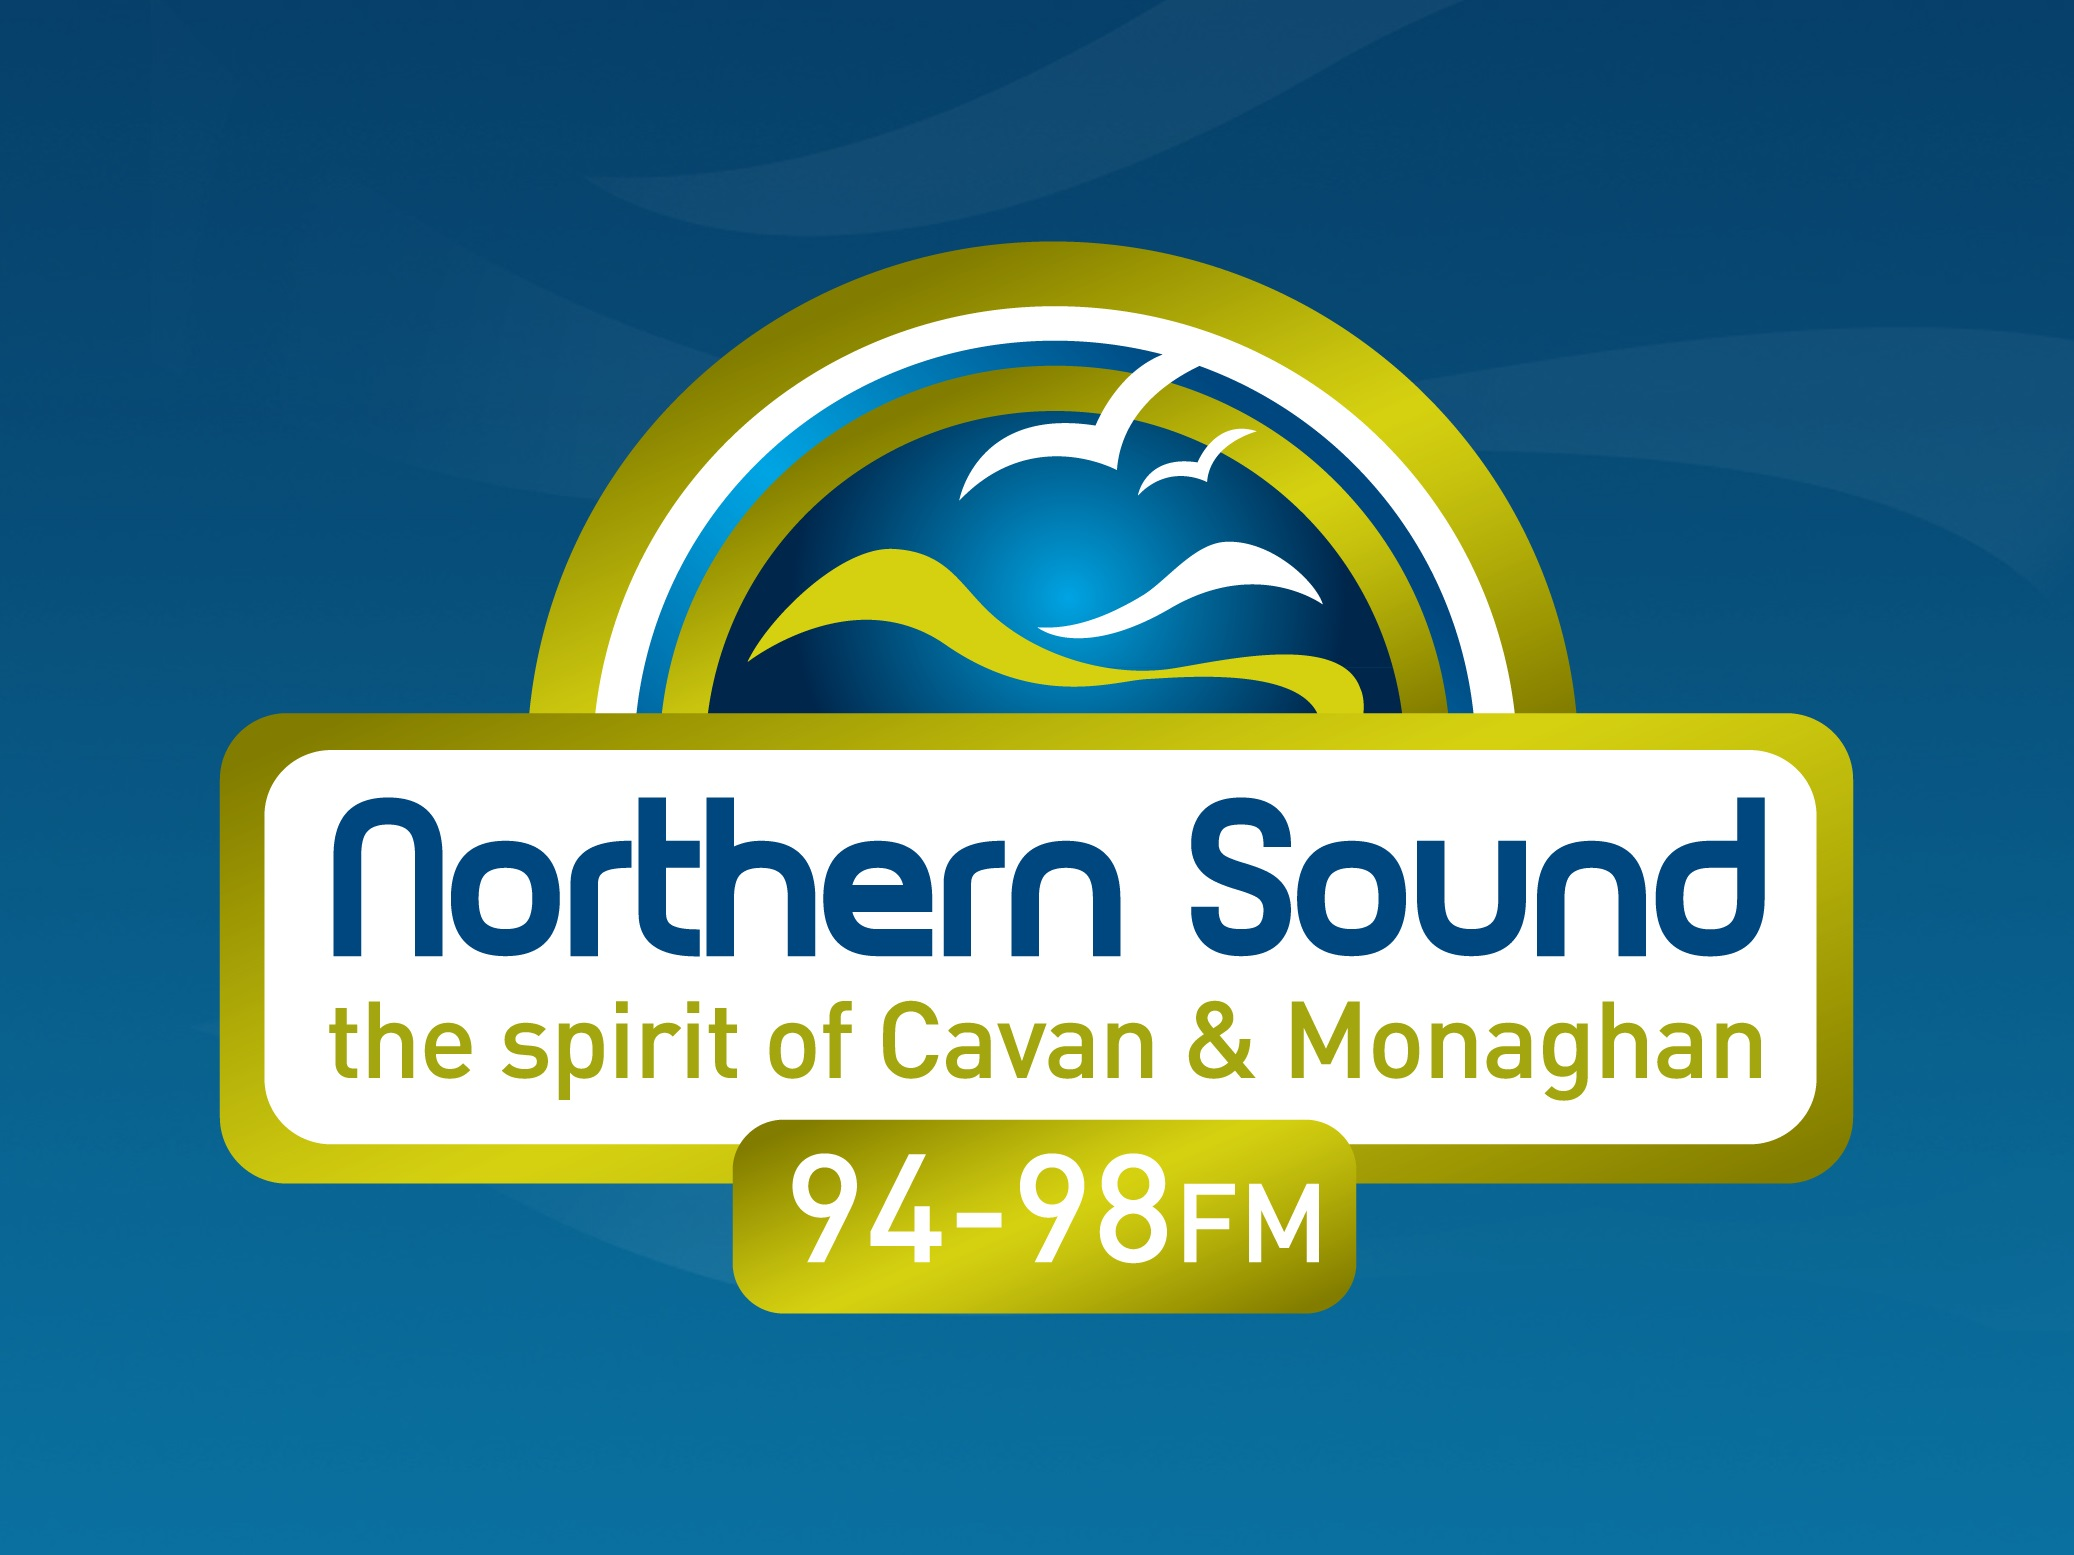 20.12.2017 Cora Sherlock on Northern Sound